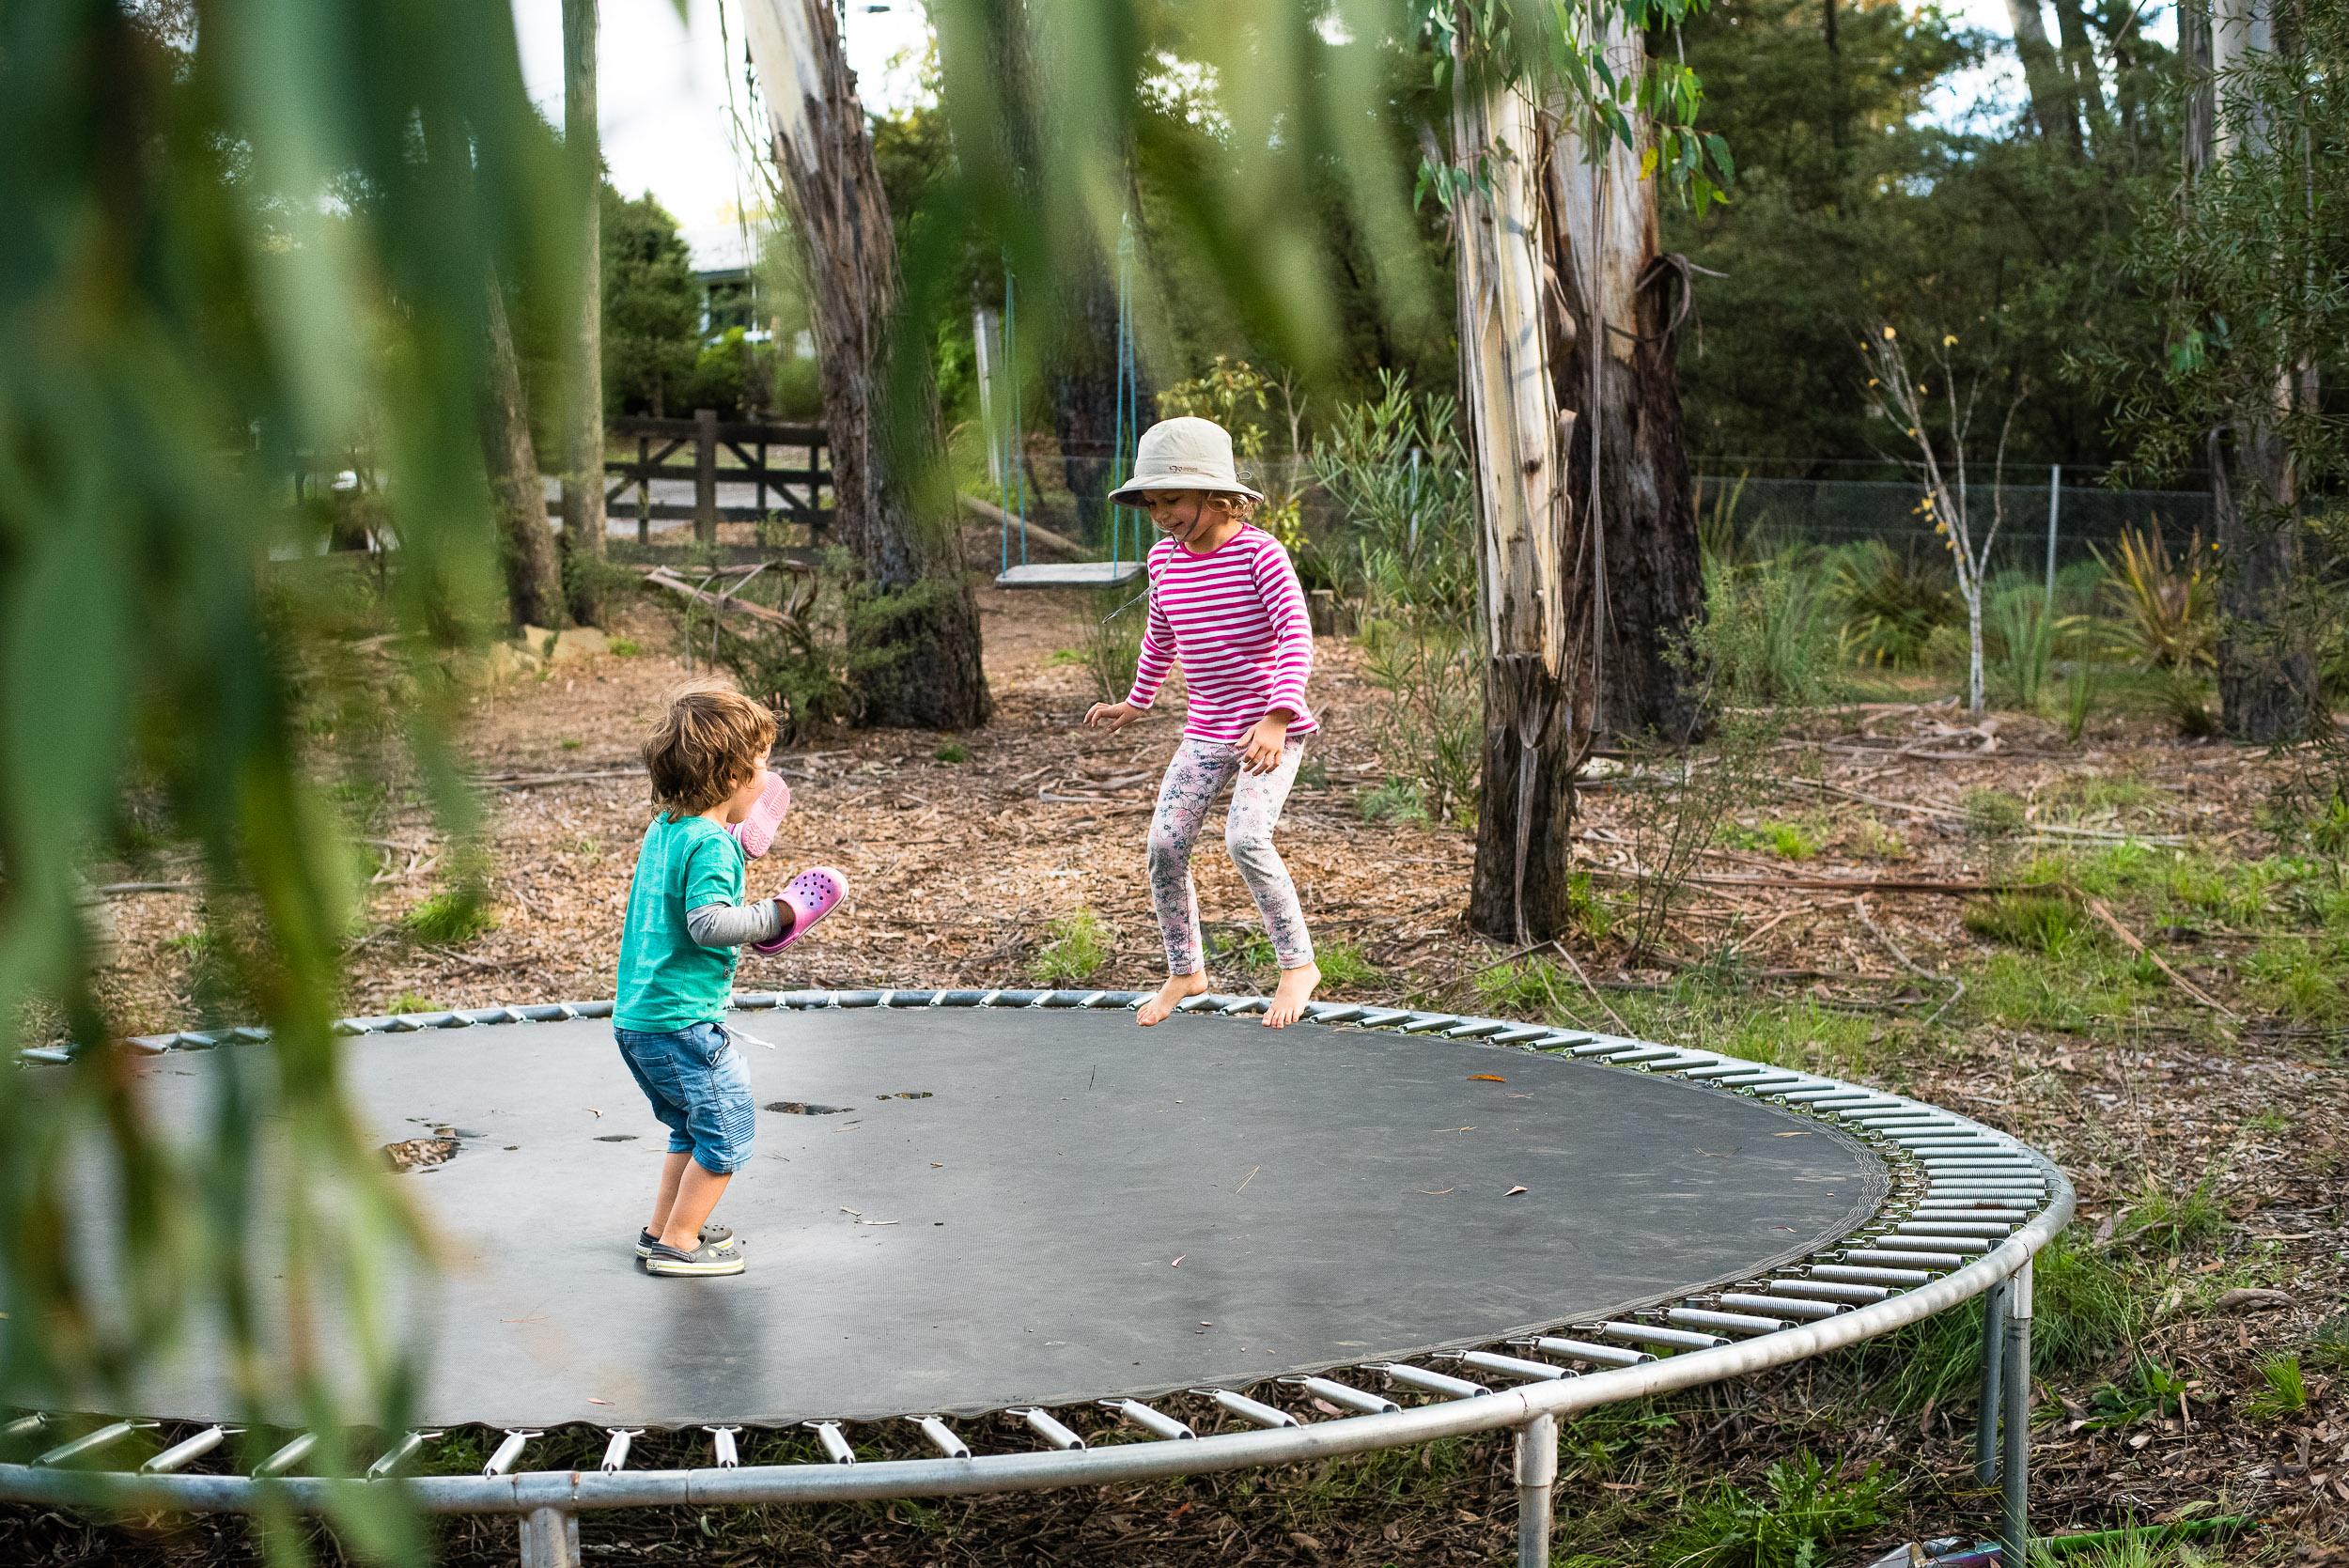 Trampoline time at Hayley and Ben's, Medlow Bath.